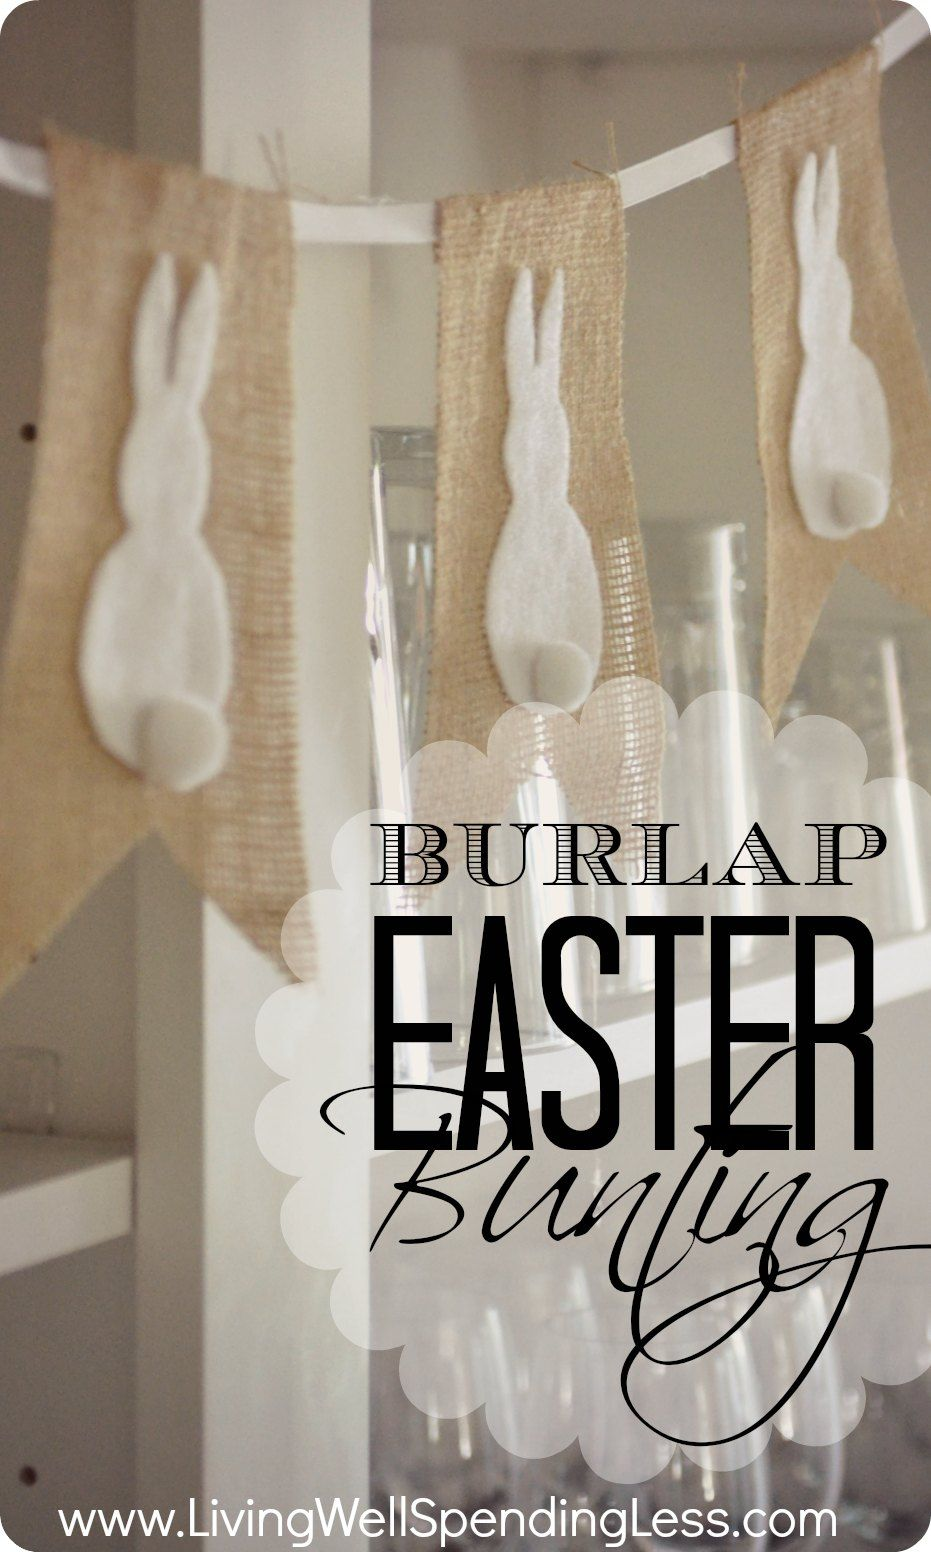 Burlap Easter Bunting–cute & simple no-sew project! #easter